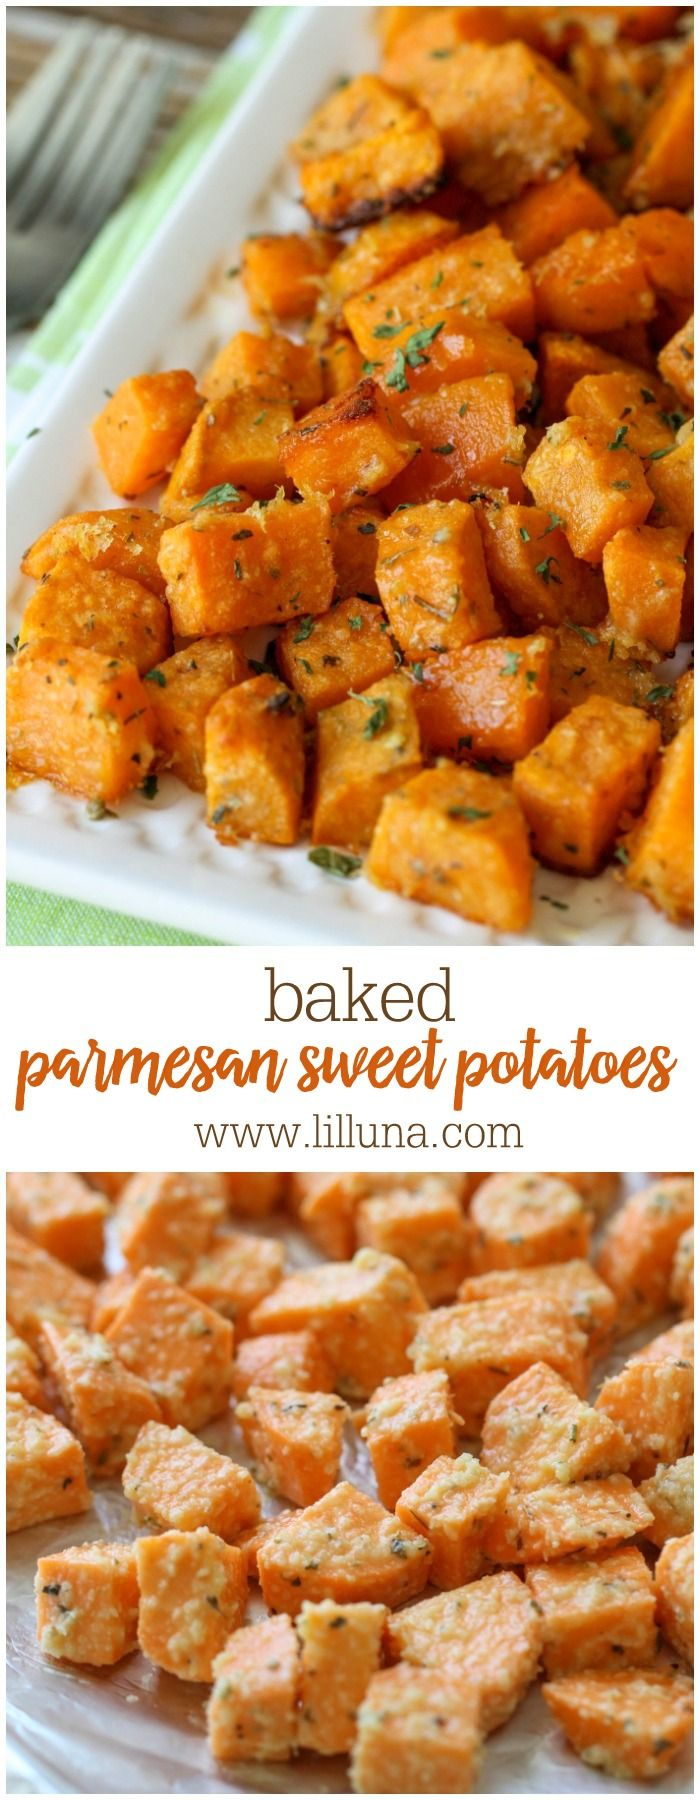 reviews favorite minutes AMAZING   dish Sweet make to side shop Potatoes online and Parmesan luxury Baked   tastes recipe  Takes my new